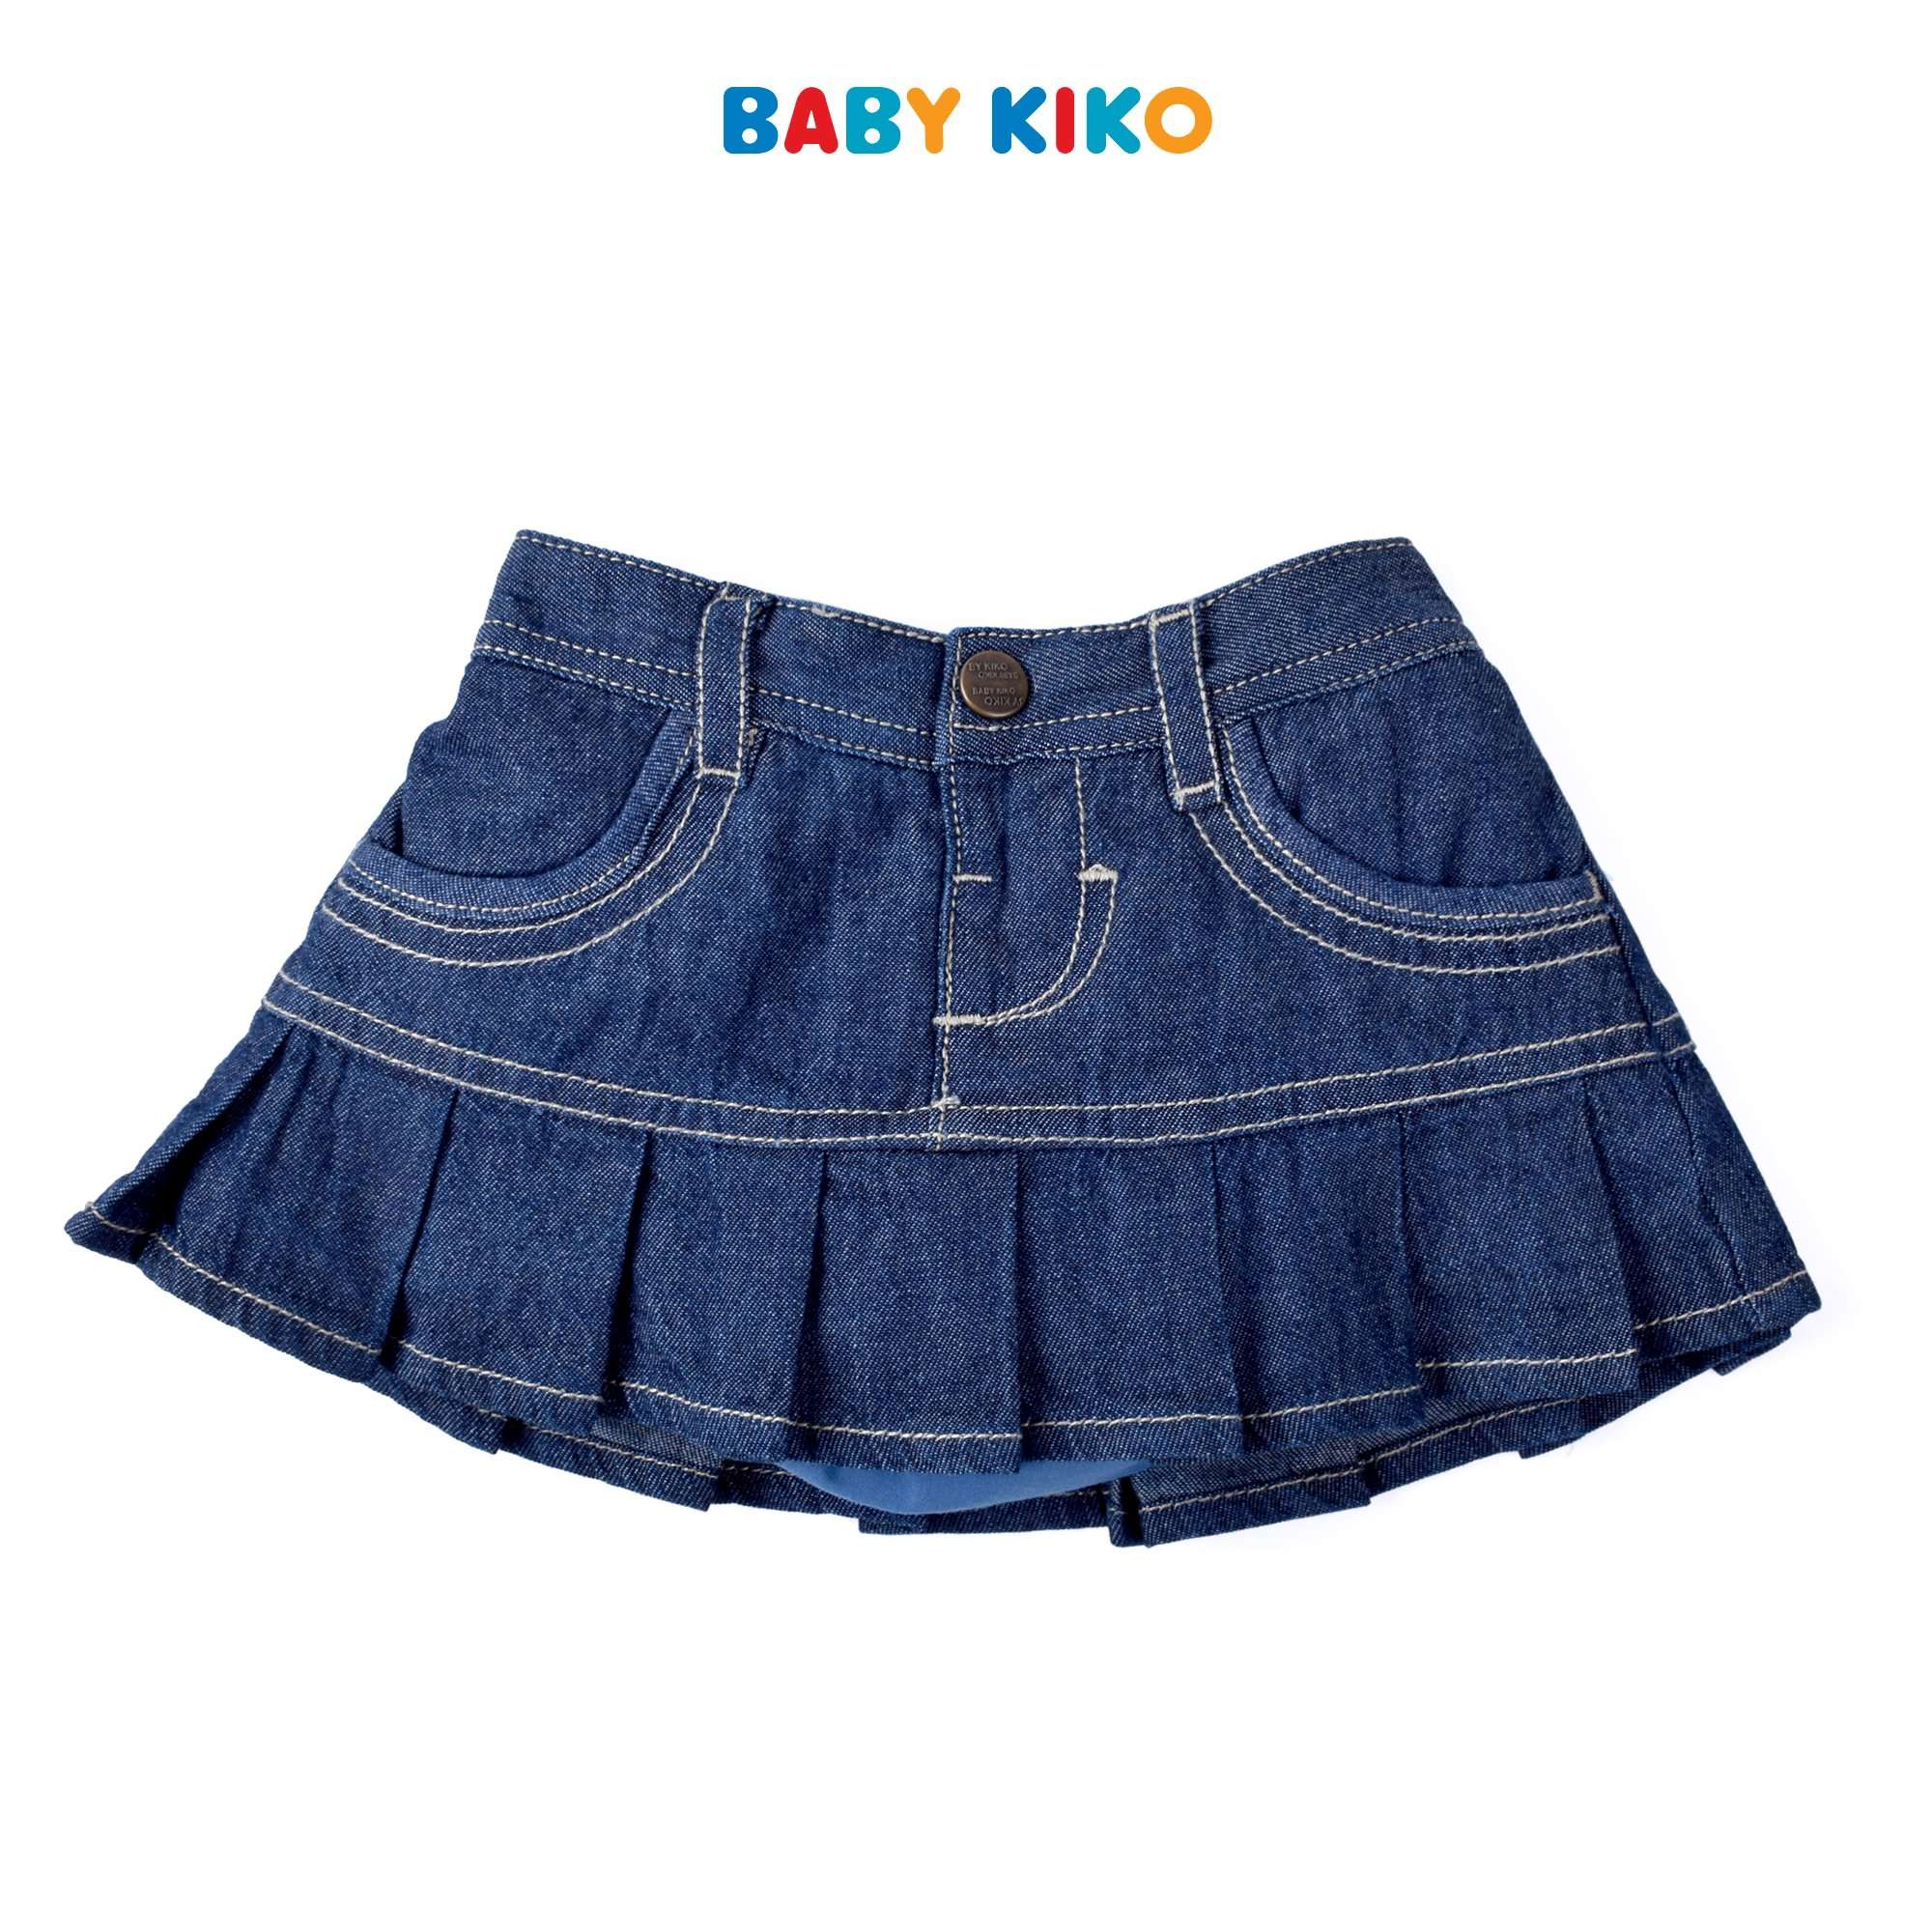 Baby KIKO Baby Girl Denim Skirt- Blue 330139-221 : Buy Baby KIKO online at CMG.MY